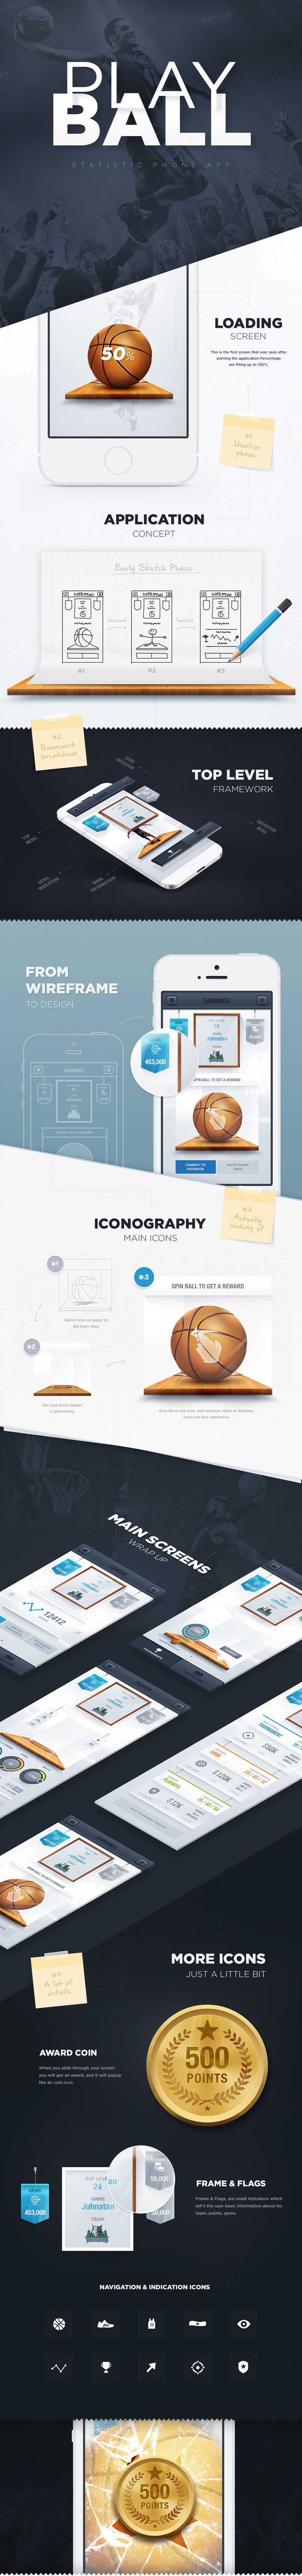 Logos, vector graphics, typography, web and UI design